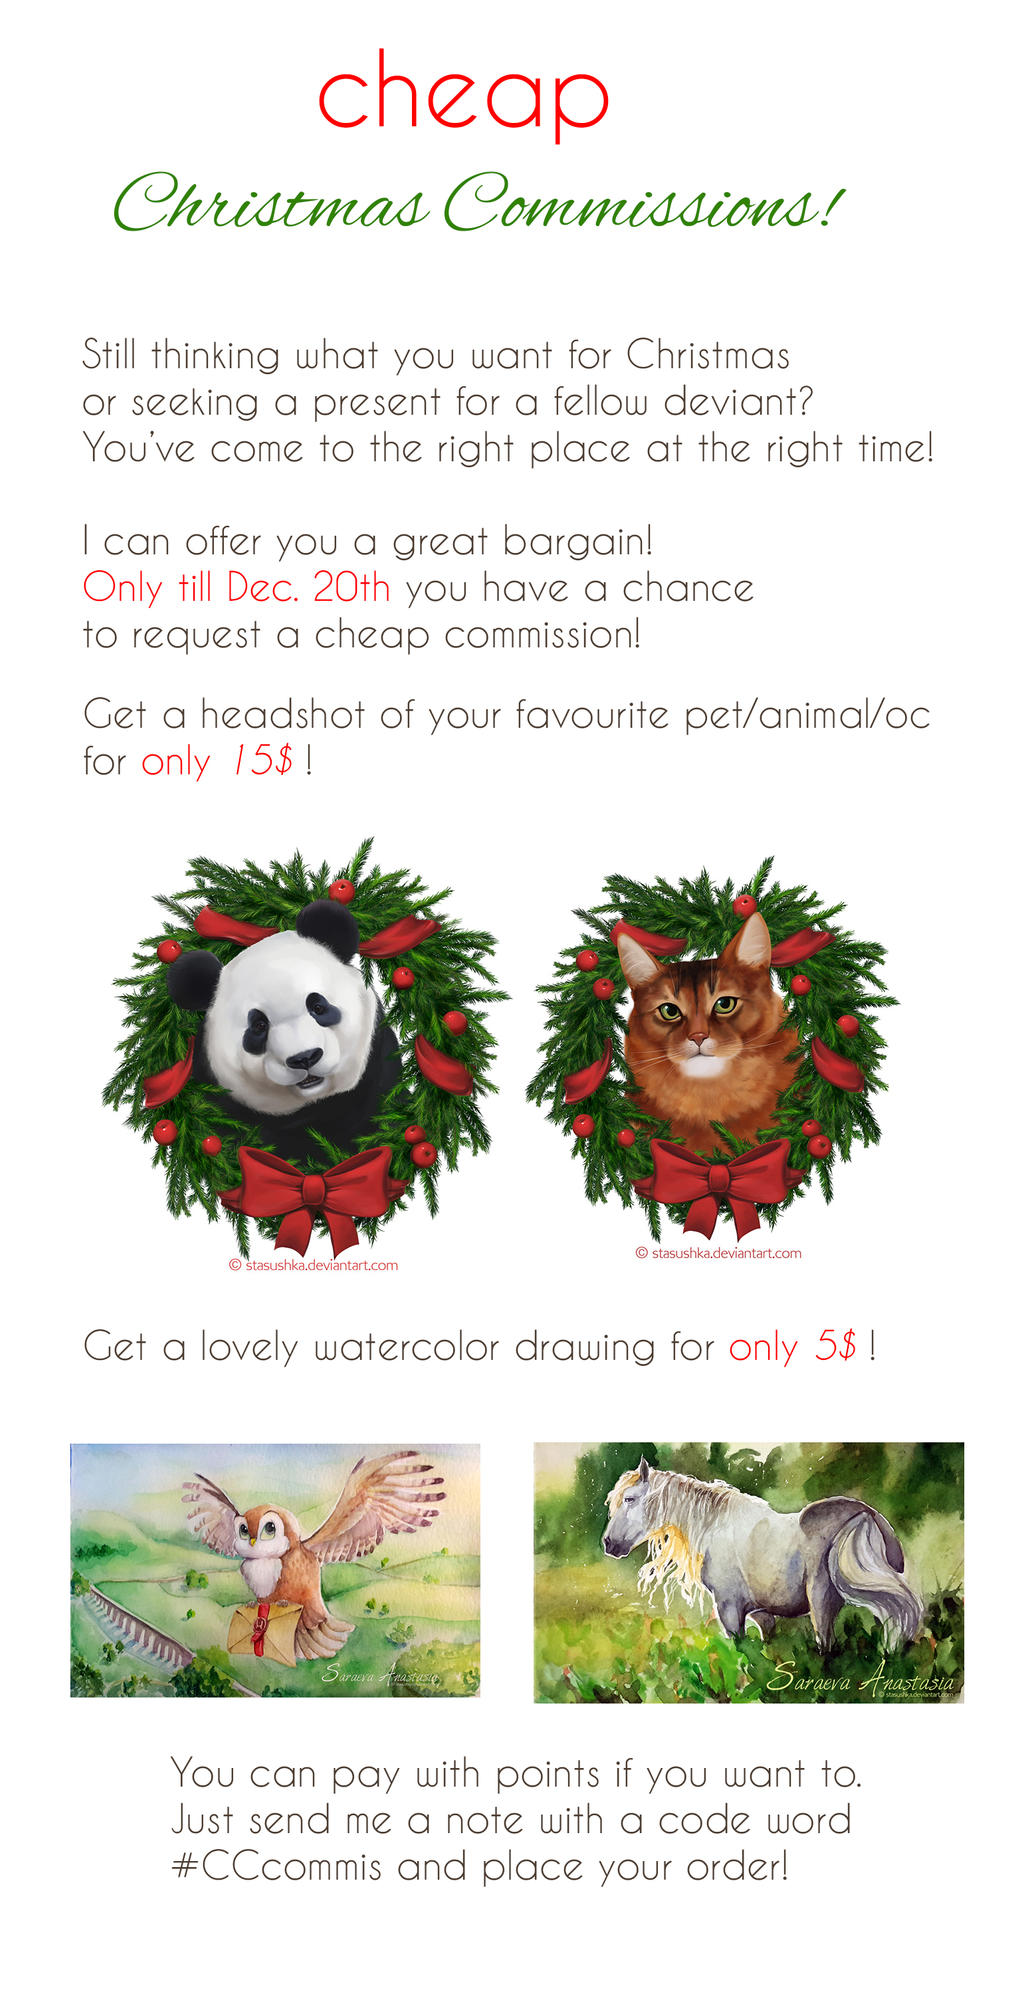 Cheap Christmas Commissions by Stasushka